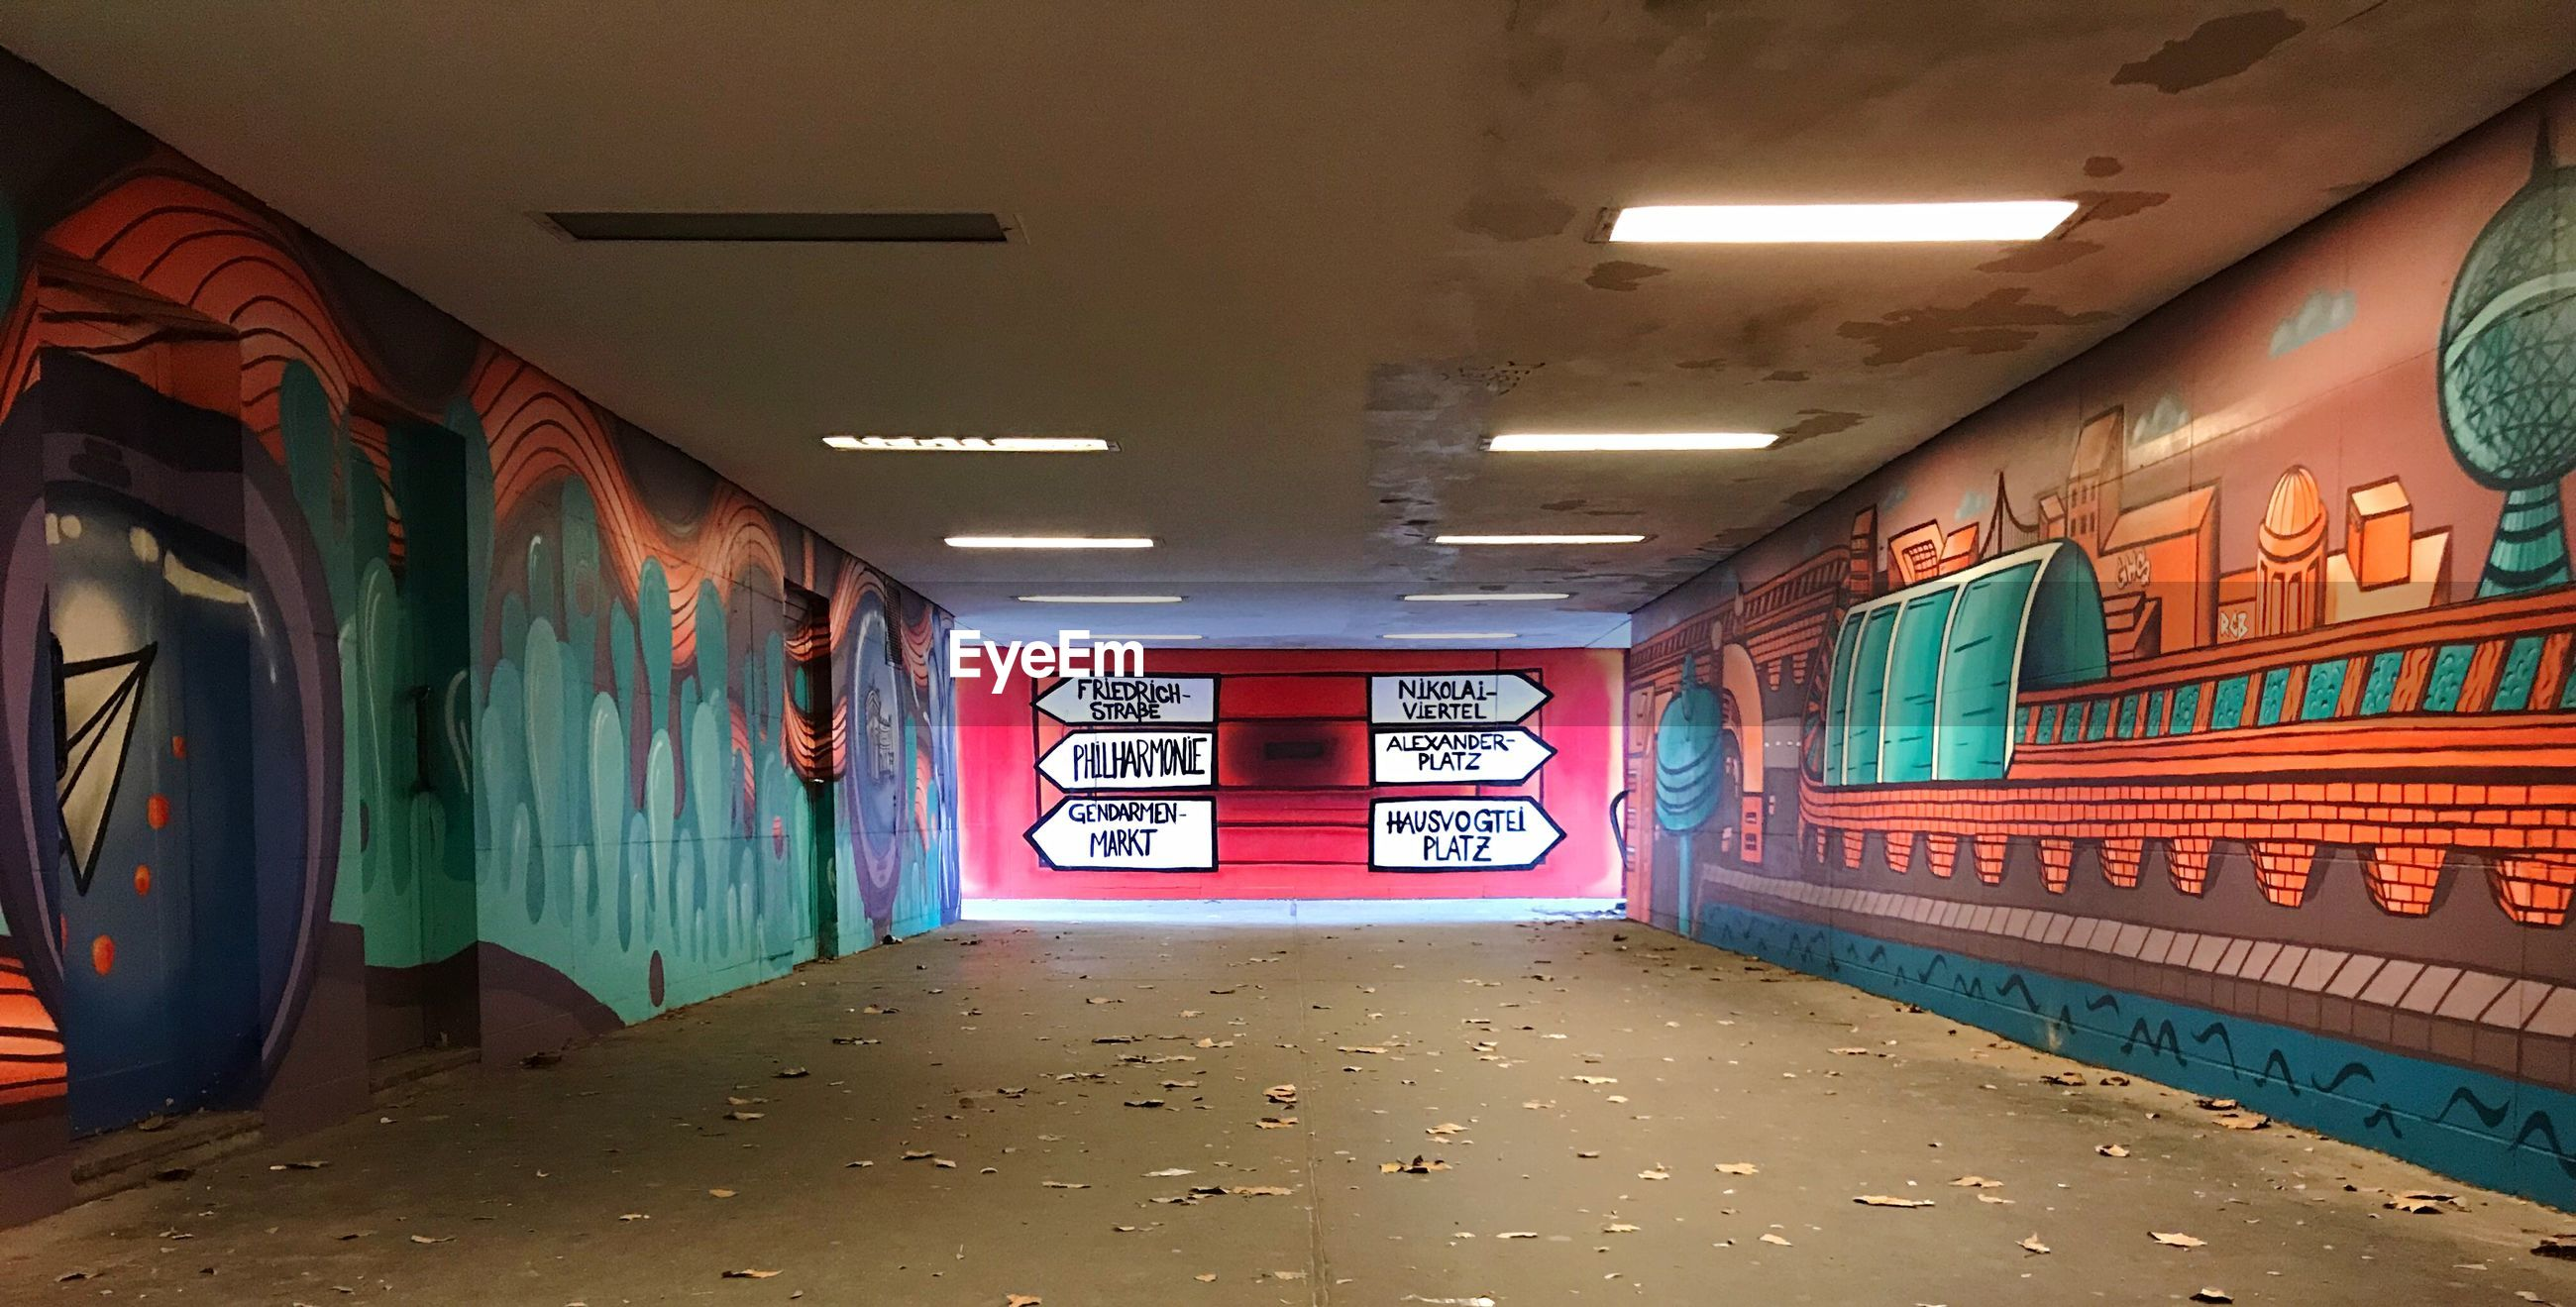 GRAFFITI ON ILLUMINATED TUNNEL